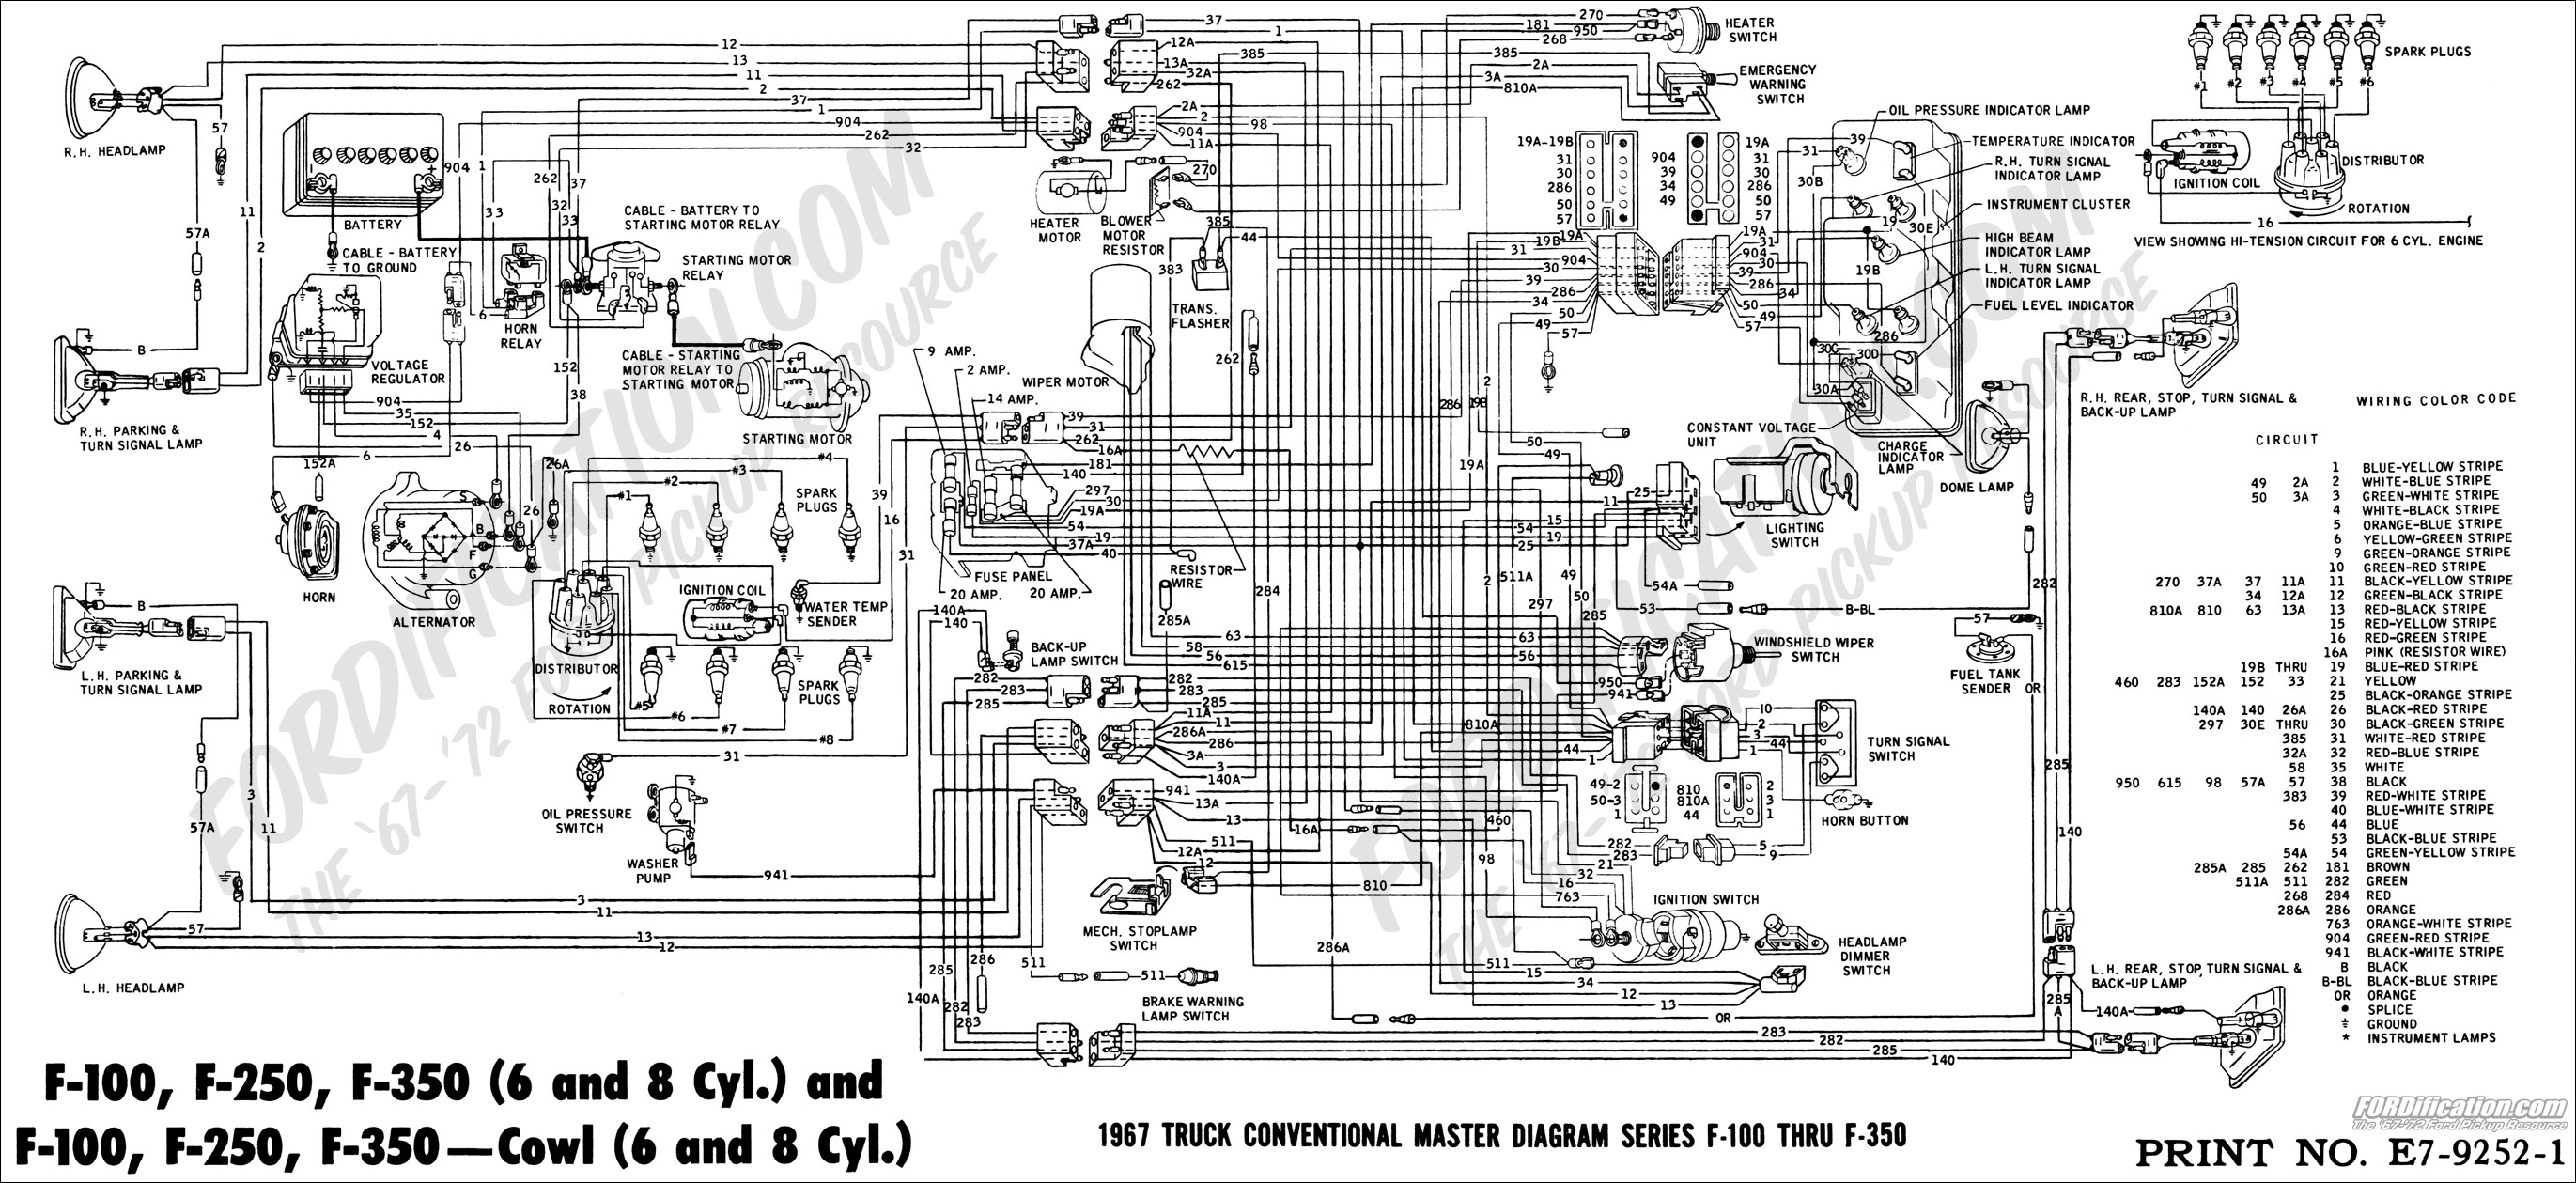 67masterdiagram 1999 ford radio wiring diagram turcolea com 1999 ford f350 radio wiring diagram at arjmand.co